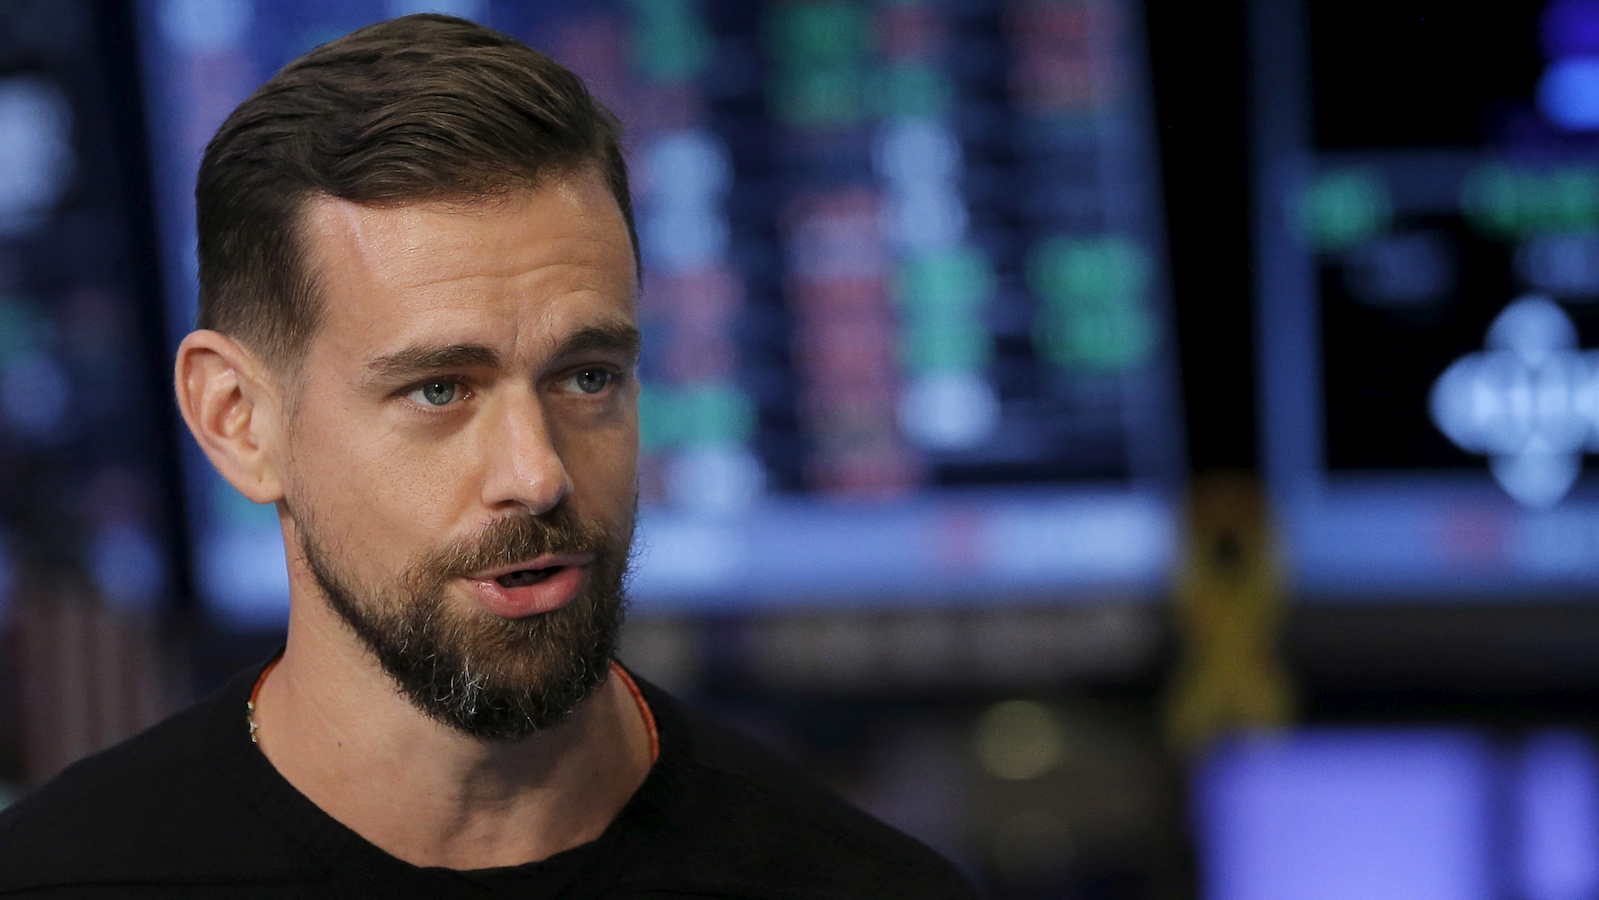 Jack Dorsey, CEO of Square and CEO of Twitter, speaks during an interview November 19, 2015. REUTERS/Lucas Jackson/Files - S1AETQMEWKAB